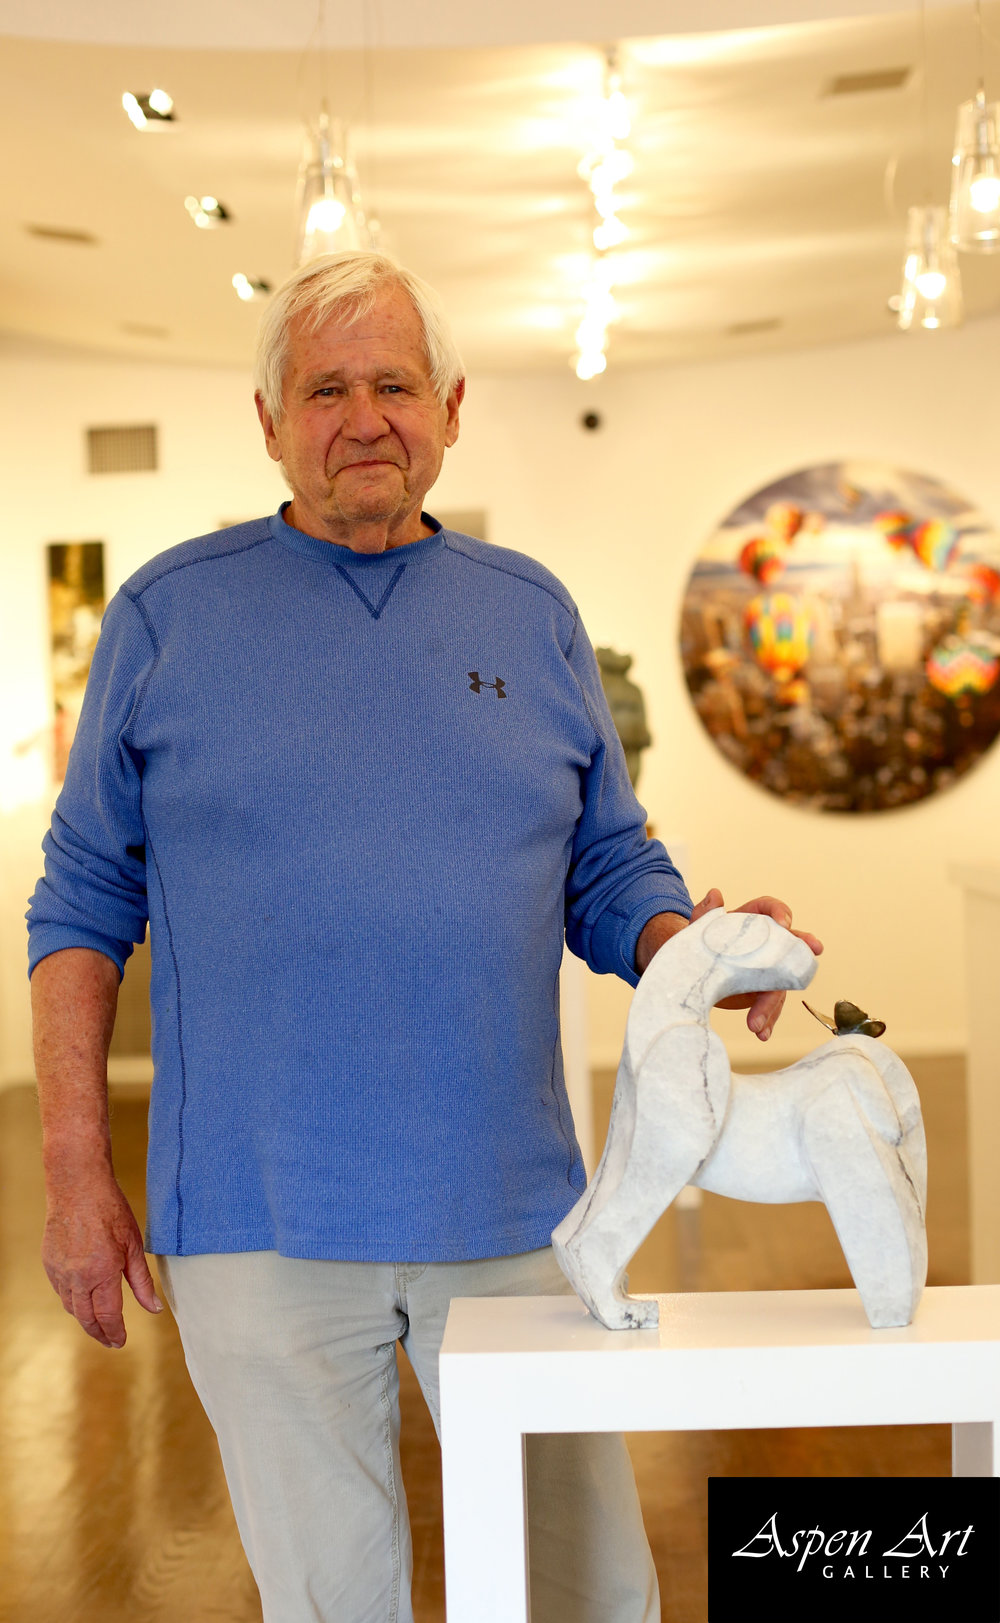 Mark Yale Harris during one of his visits at the Aspen Art Gallery